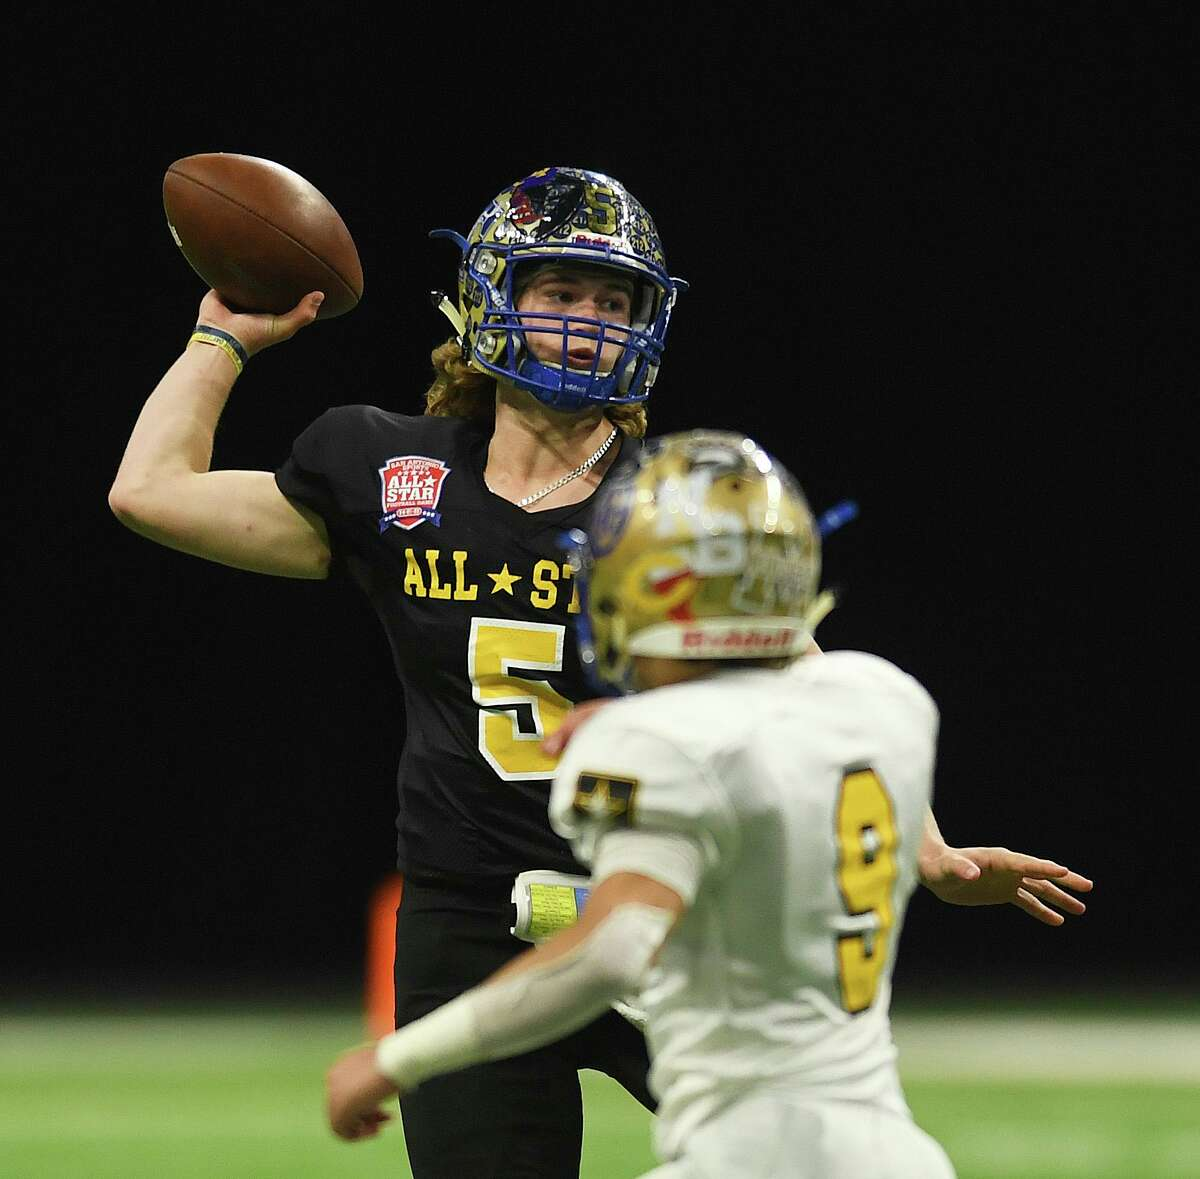 Team Black quarterback Trapper Pannell throws against Team Gold during the second half of the San Antonio Sports All-Star Football Game in the Alamodome on Saturday, Jan. 4, 2020. Pannell plays for Tivy High School.